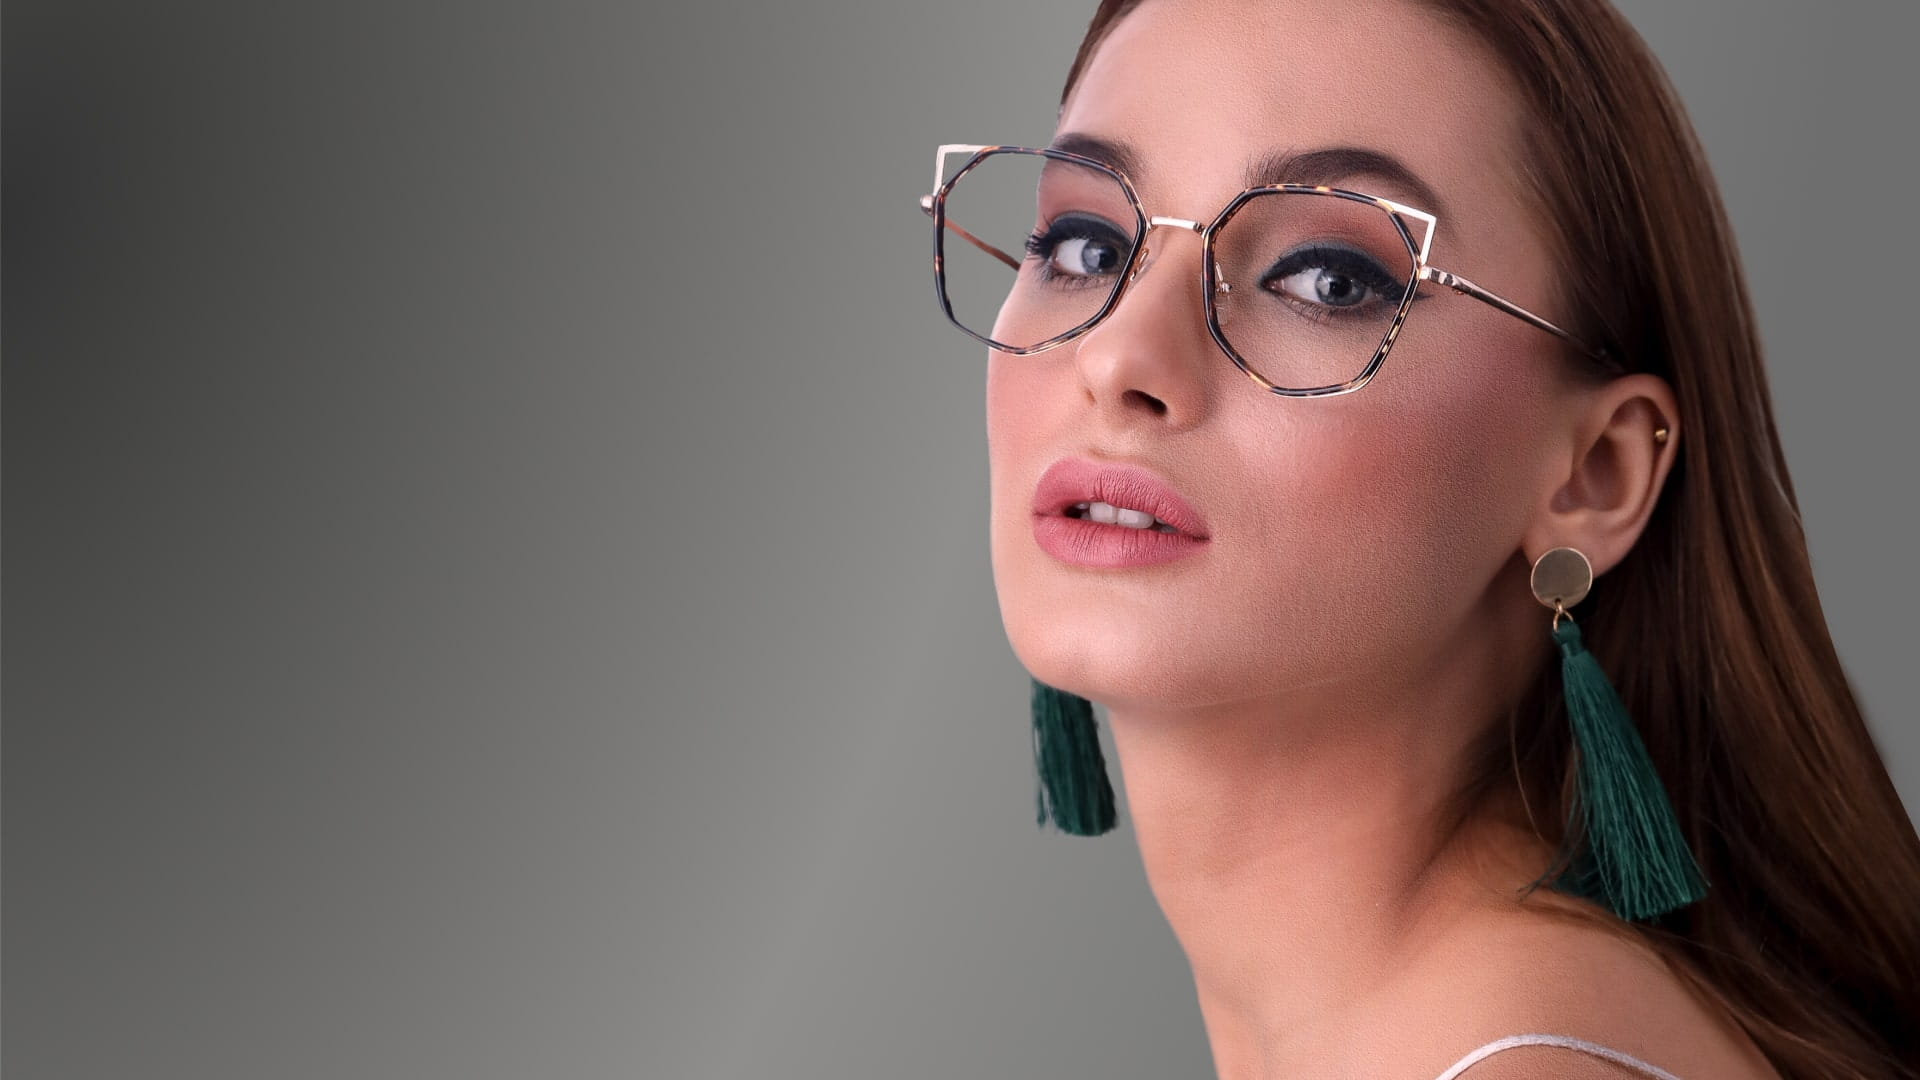 Young woman with glasses brown hair and green earrings